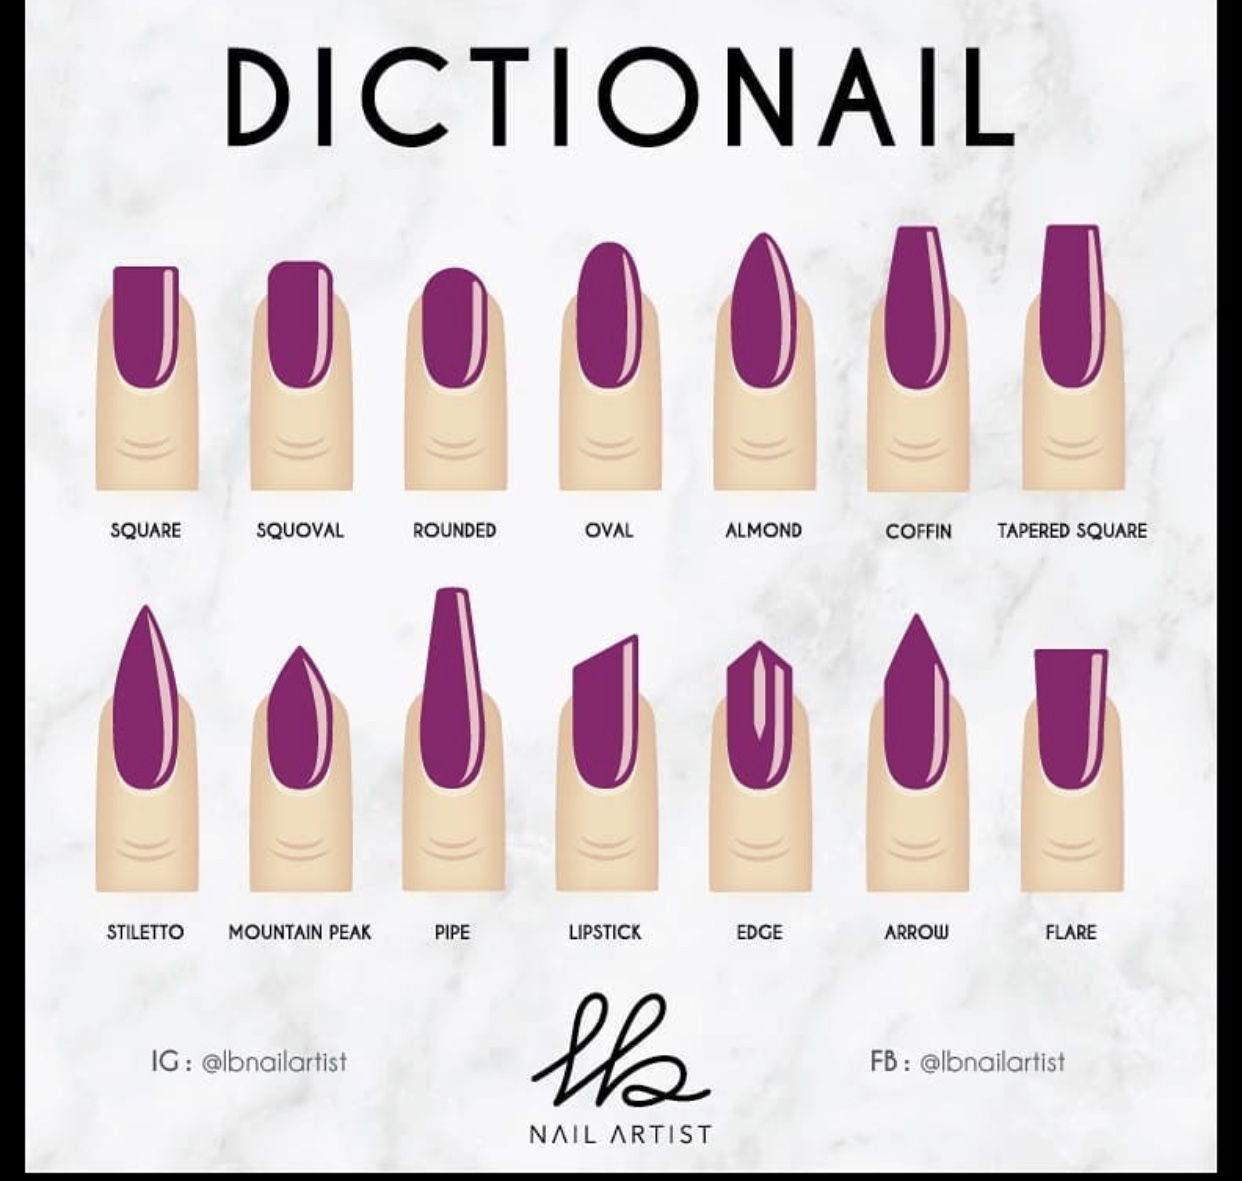 Pin By Destany B On Nails Natural Nail Shapes Nail Shapes